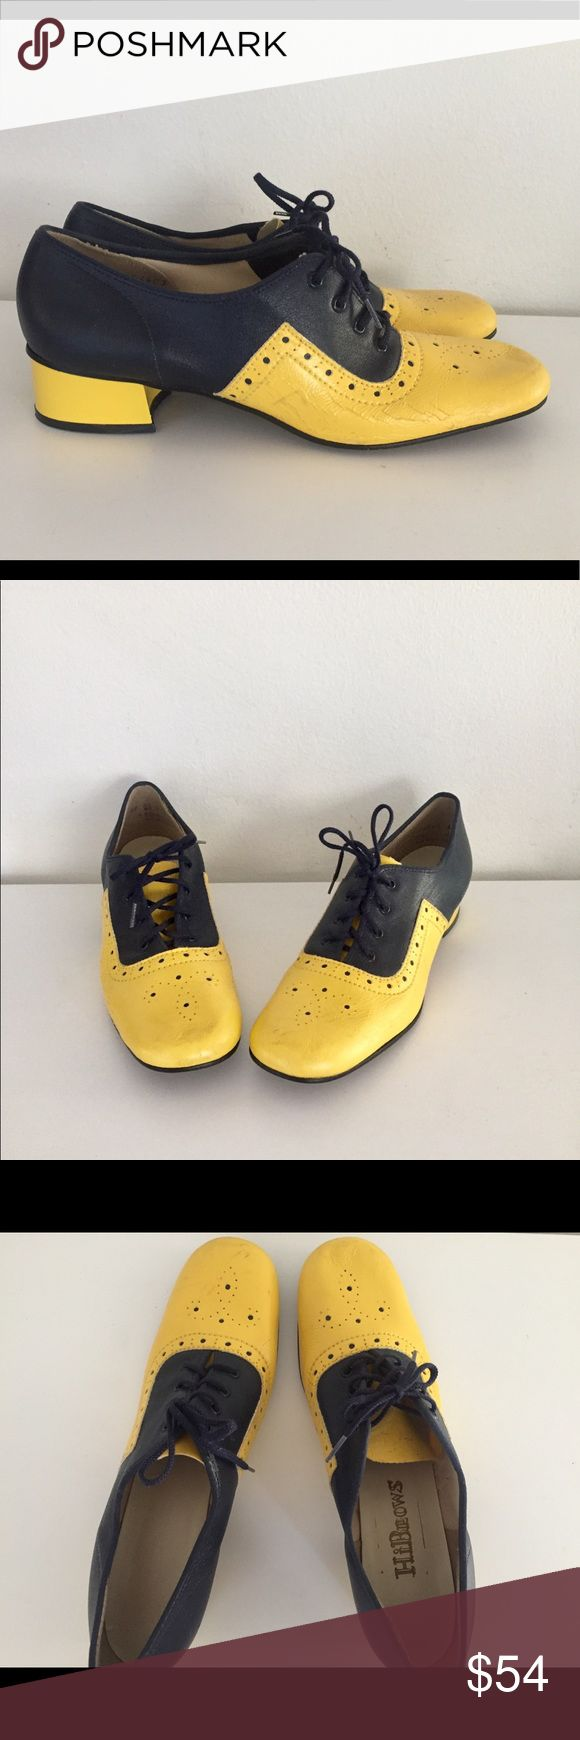 """Vintage 60s Spectators Mod Oxford Heels Wing Tip 8 60's oxford style lace up spectators in black and yellow.  The laces are leather and have tassels at the ends, the upper is leather, the inner and footbed is glove soft leather and they have a leather sole as well.  Material- manmade Maker: HiBrows Era: 60's  Size: 8AA  Length- 10"""" insole  Width- 3""""  Back Heel- 1.25""""    Condition: good, the vinyl is wrinkled and cracking in some areas but still look good, they will be conditioned prior to…"""